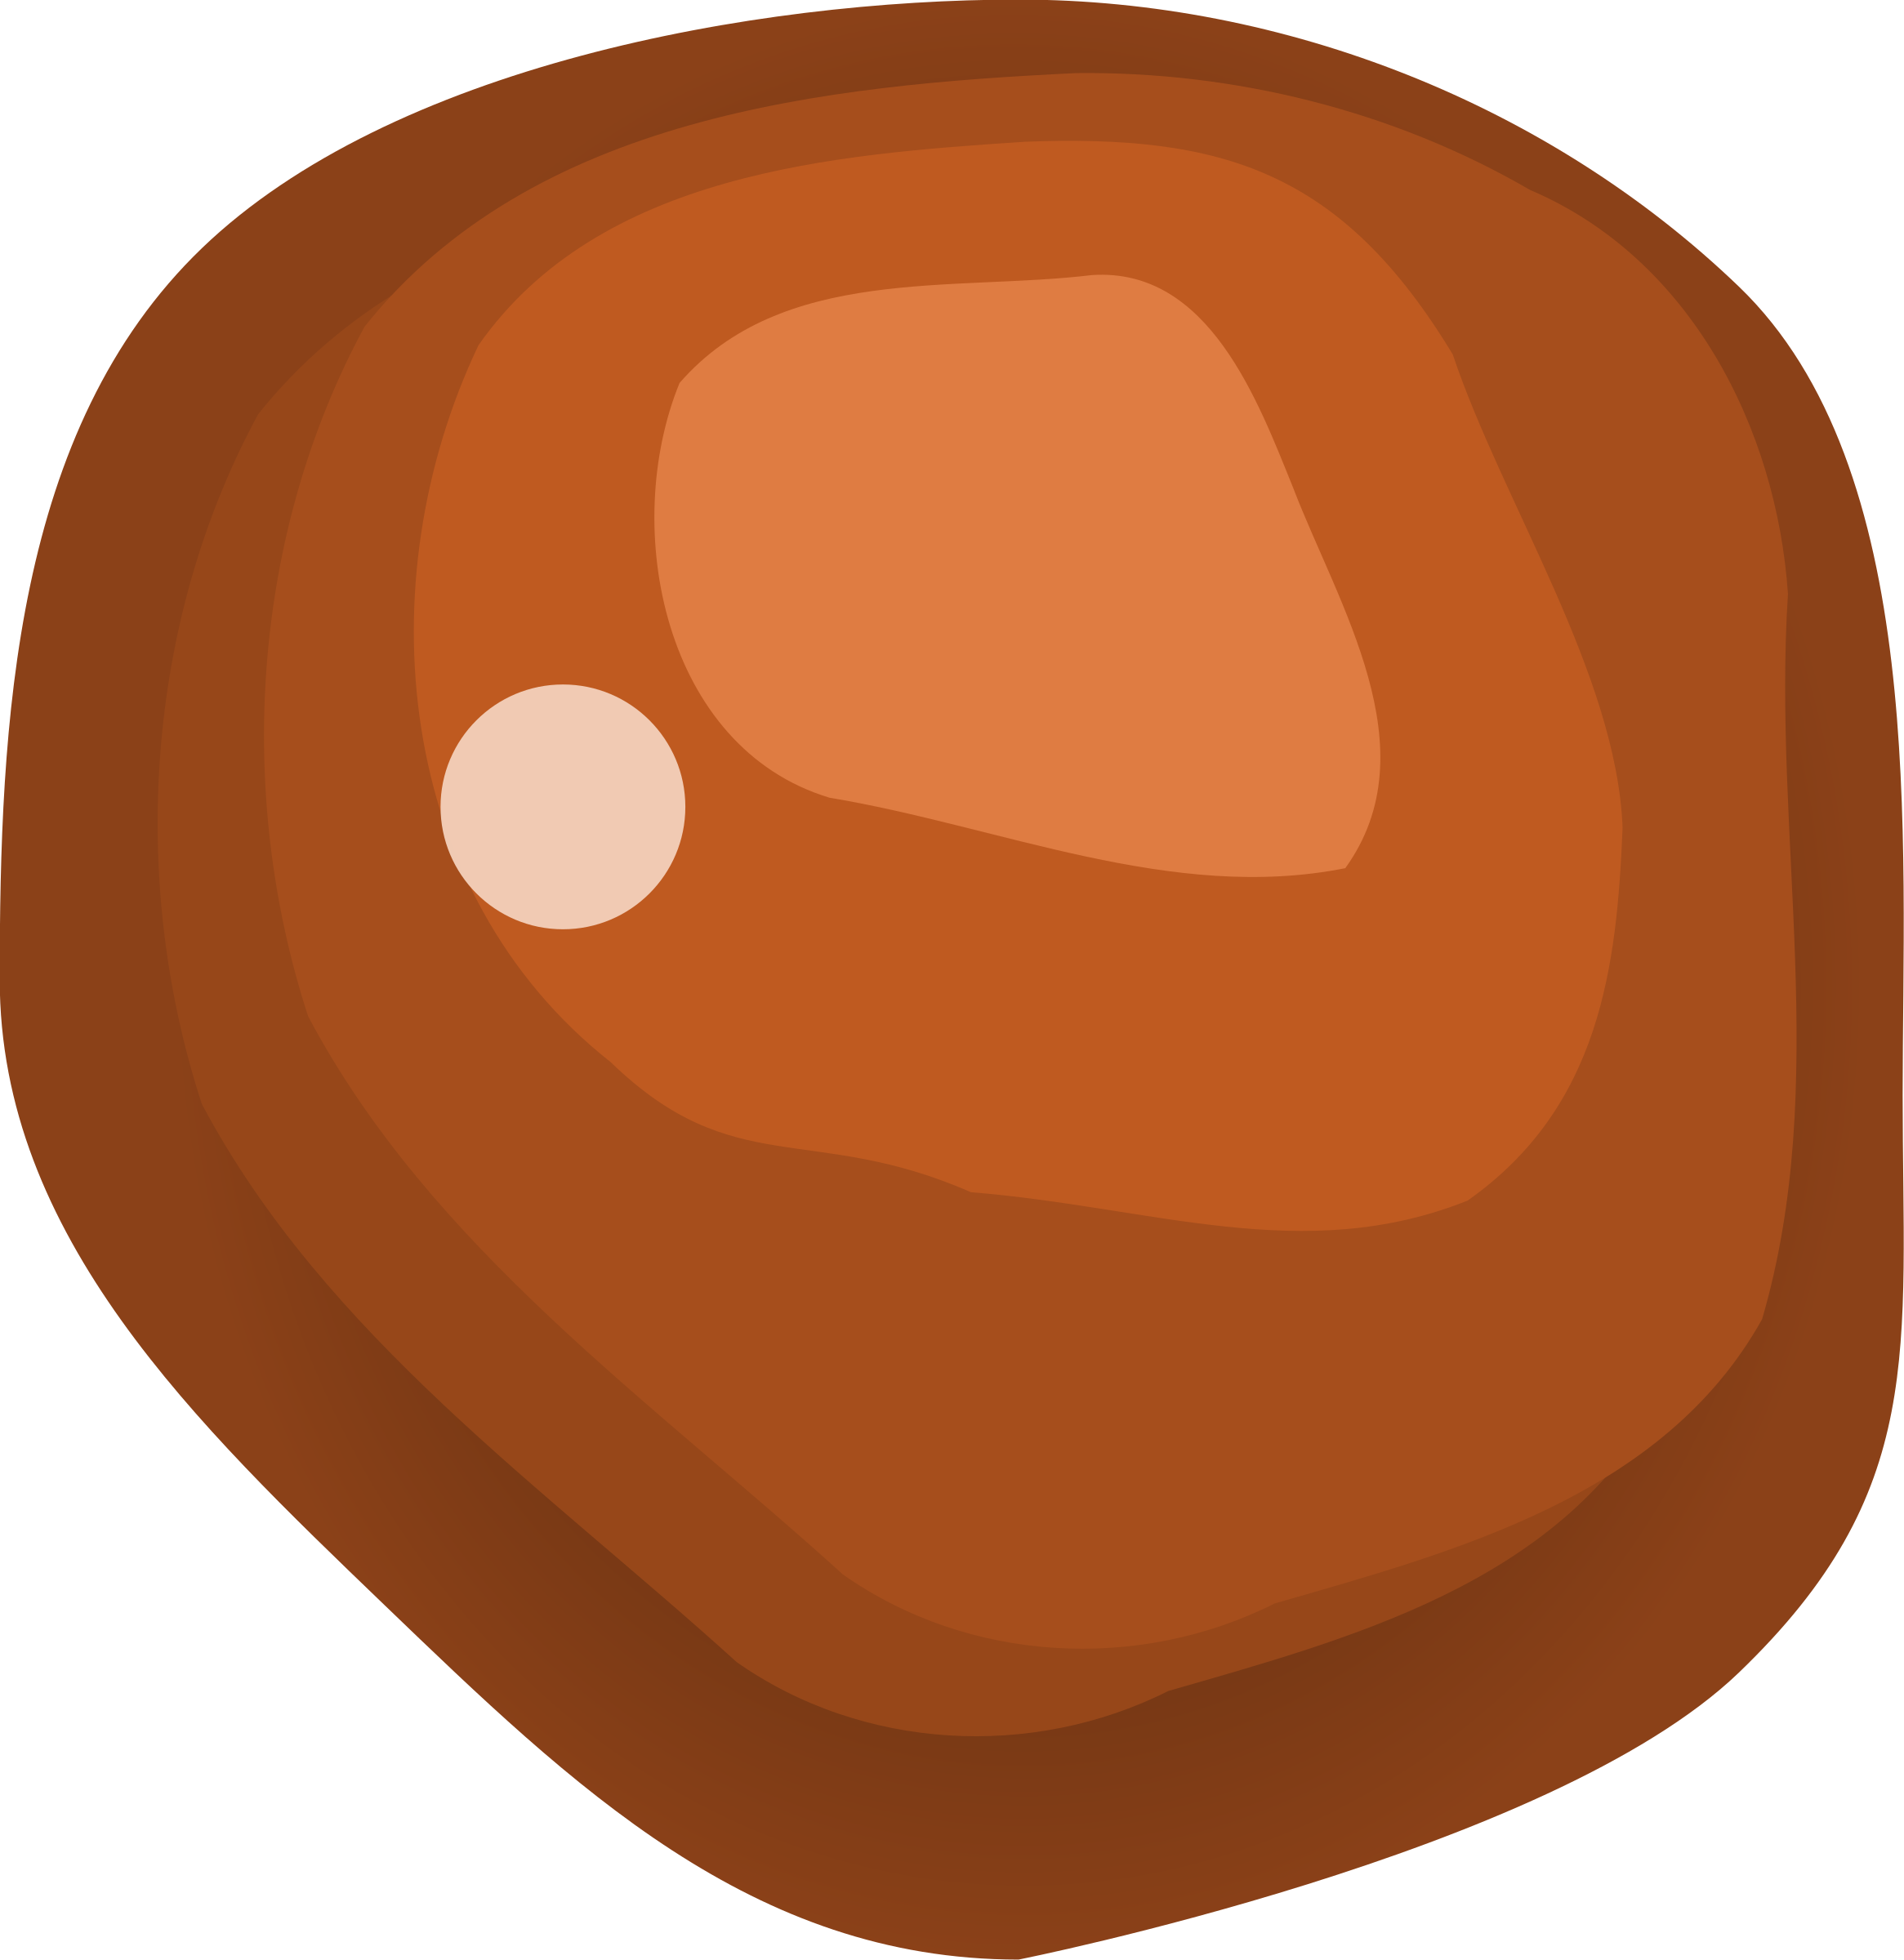 Clipart rock planet or a moon